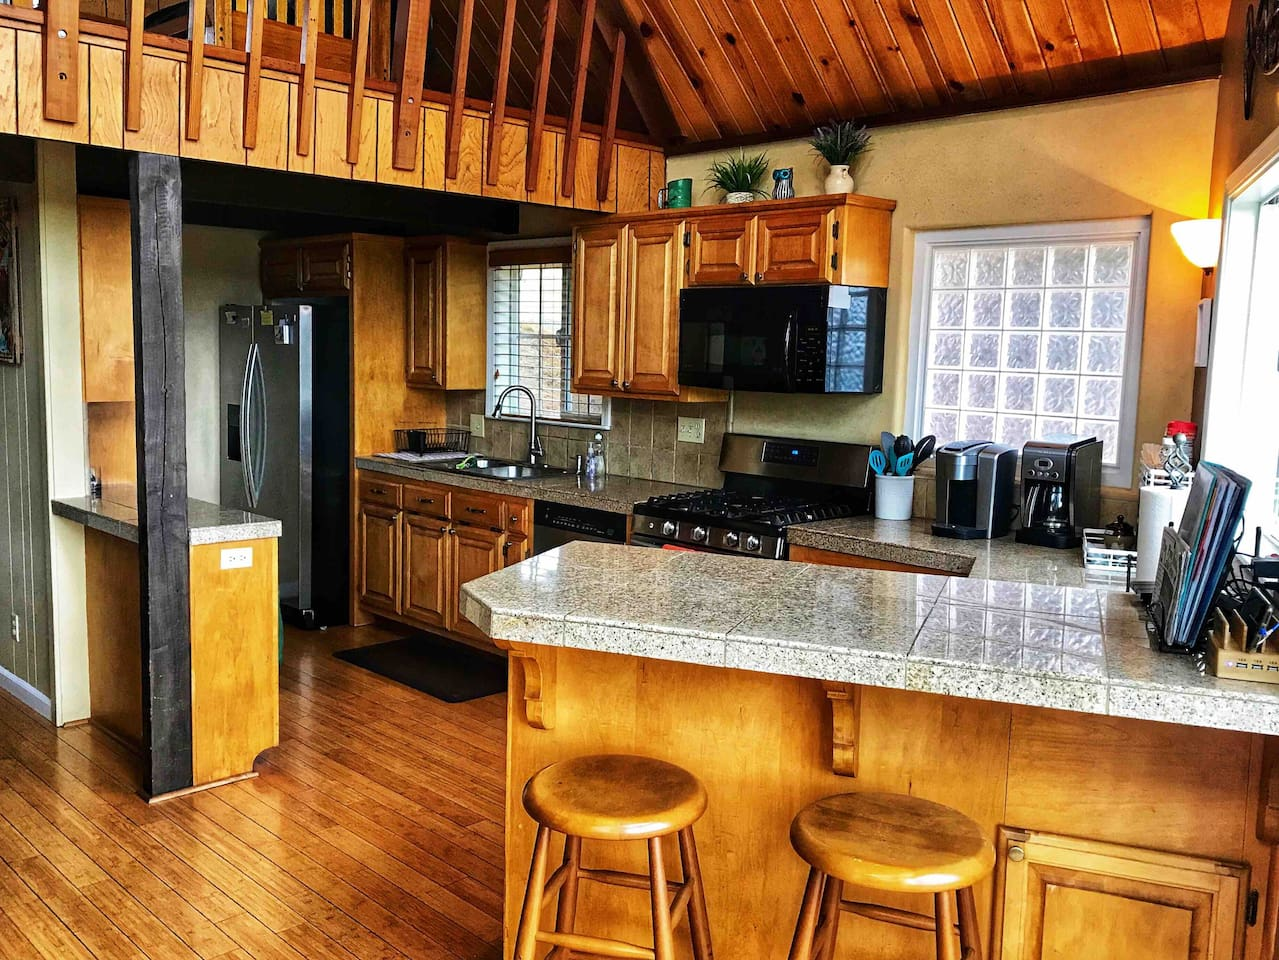 Enjoy cooking for the crew in this fully stocked kitchen with all gadgets for your cooking needs. There is also a 5 device charging station on the counter.